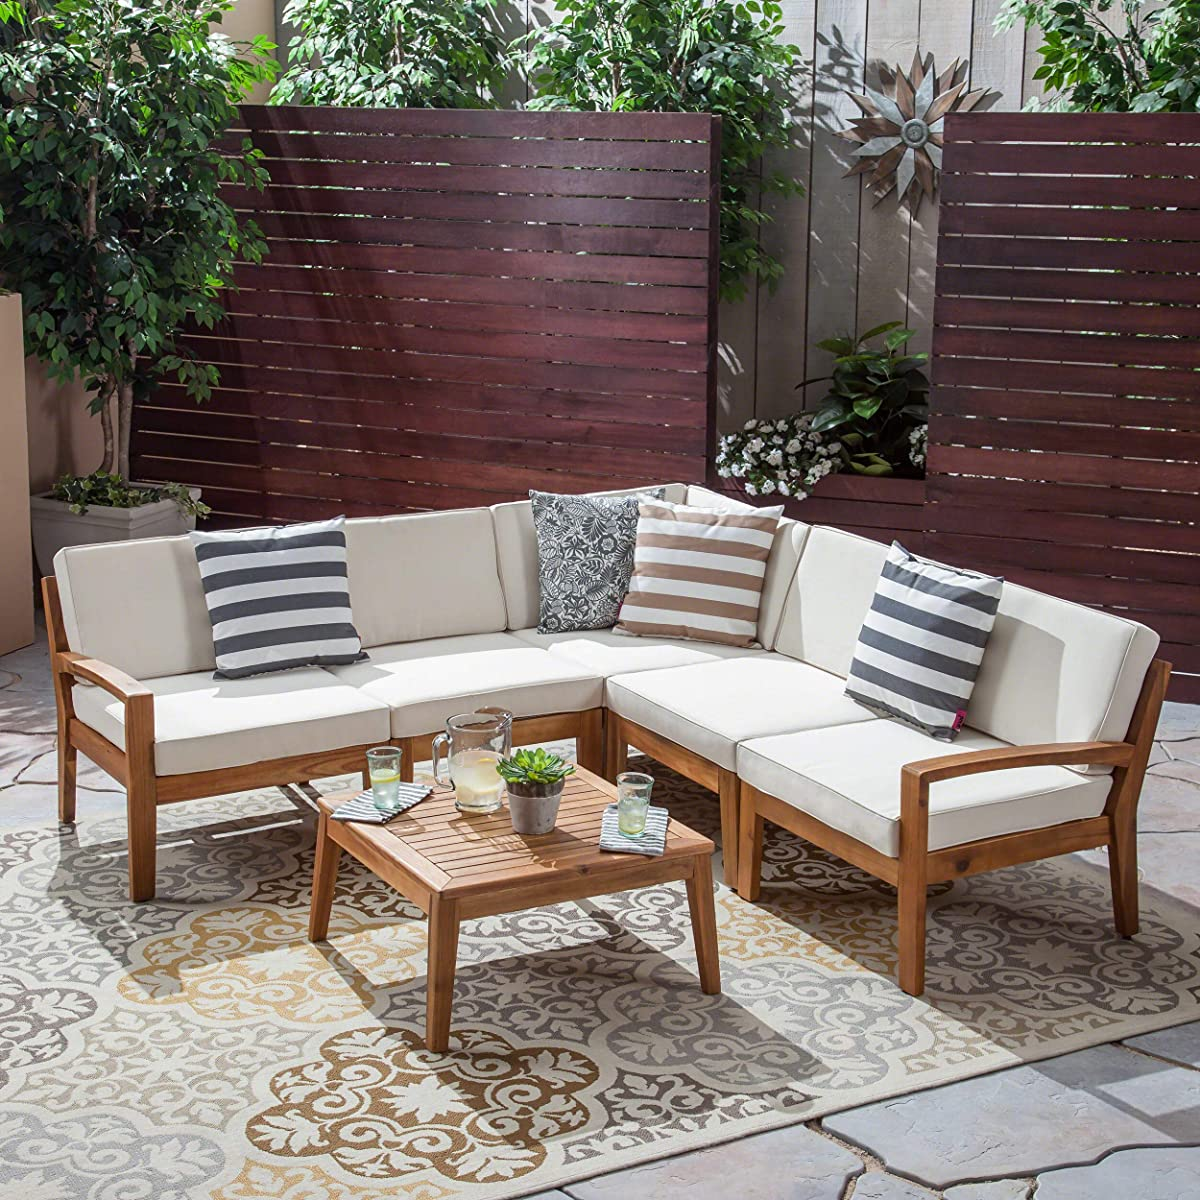 Great Deal Furniture Roy Sectional Sofa Set for Patio | Acacia Wood with Cushions | 5-Piece Sectional with Coffee Table | Teak and Beige